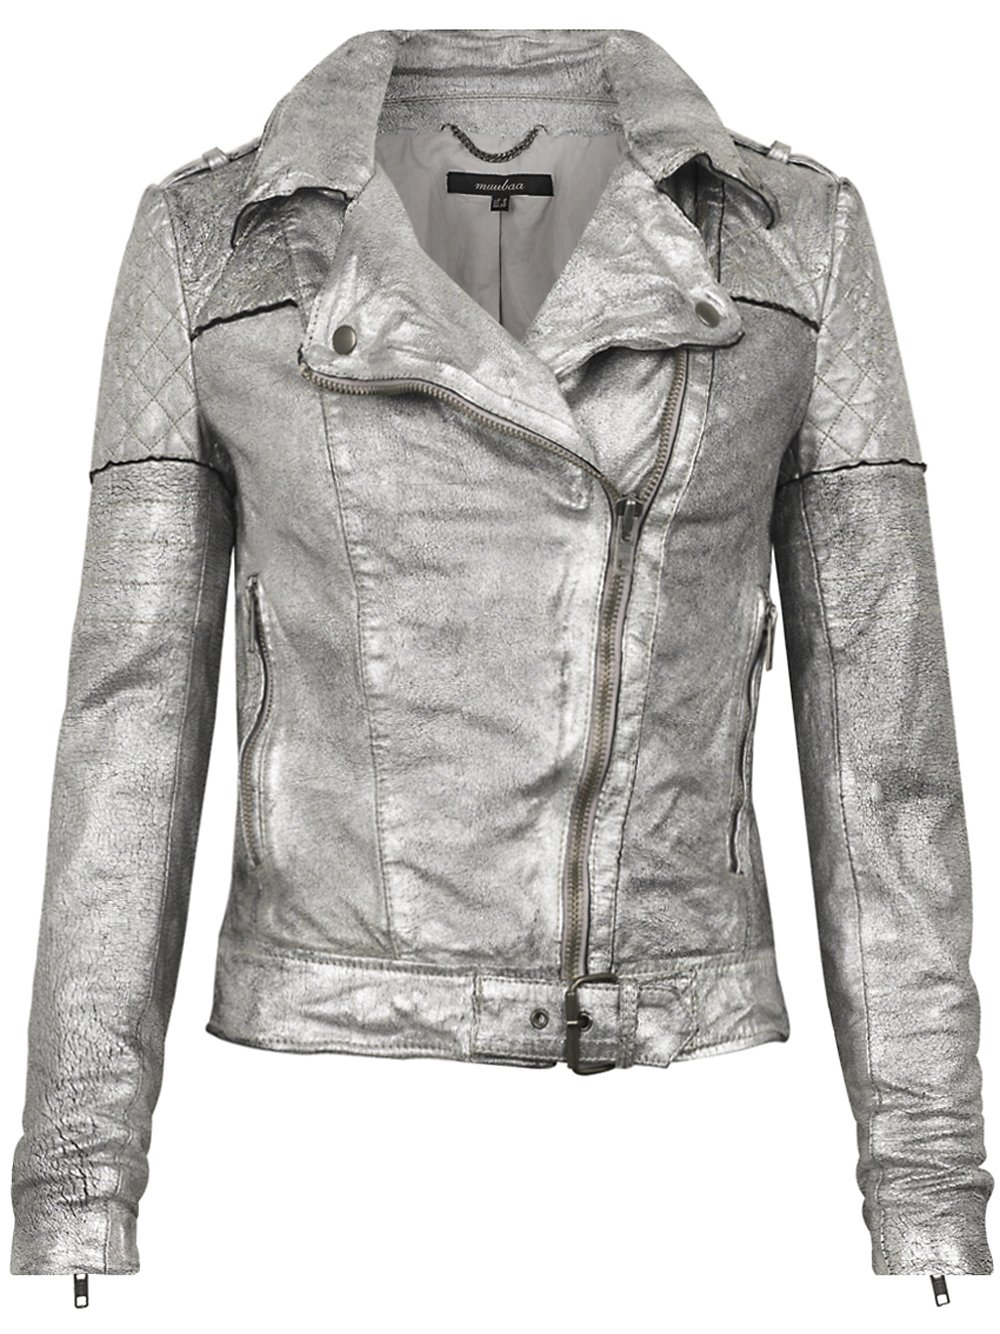 Silver leather jackets